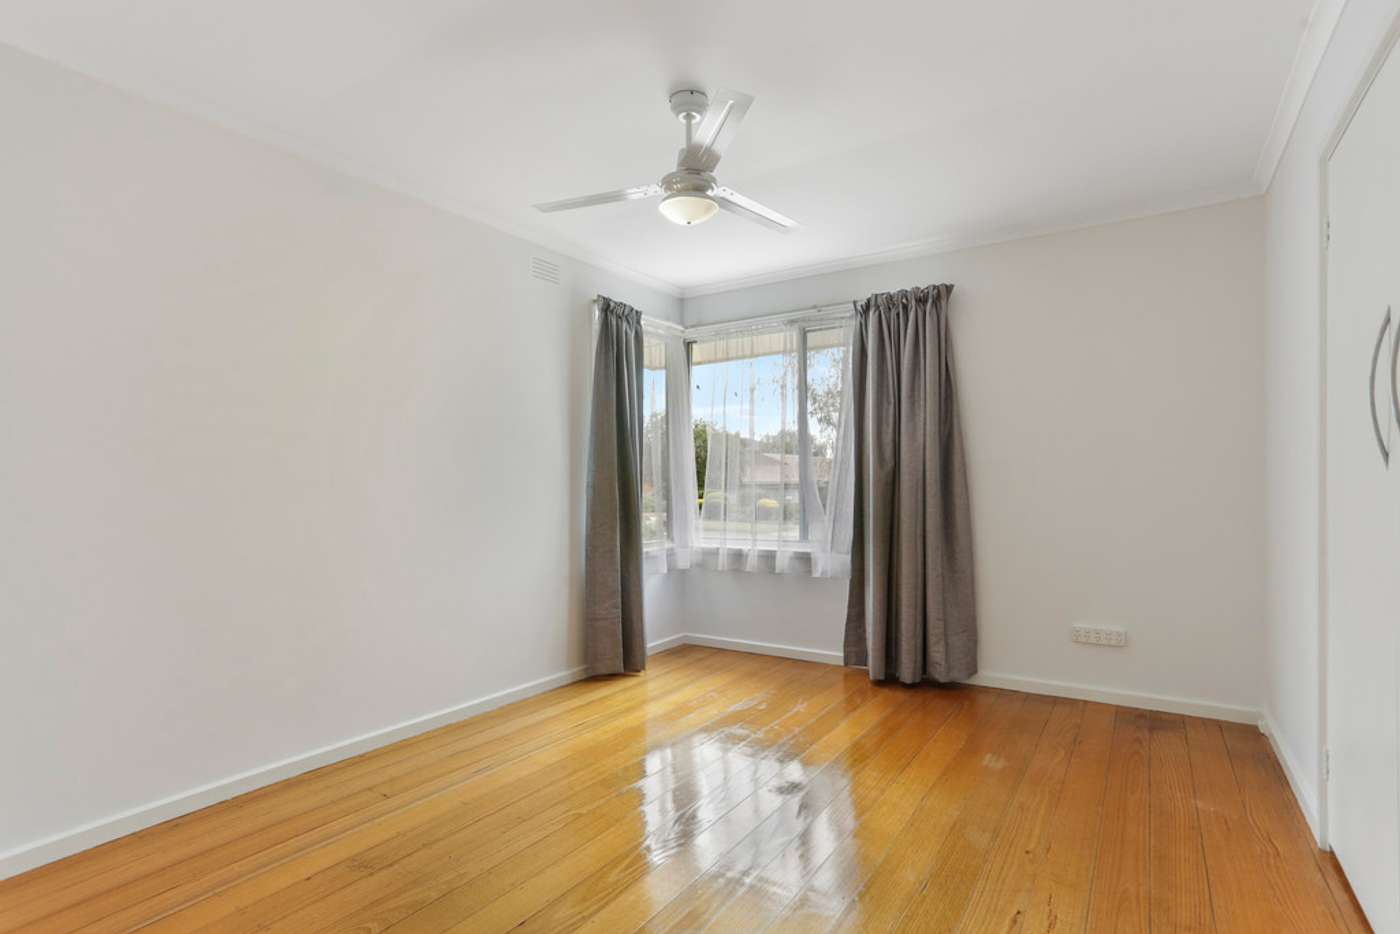 Sixth view of Homely house listing, 11 Lola Street, Mulgrave VIC 3170